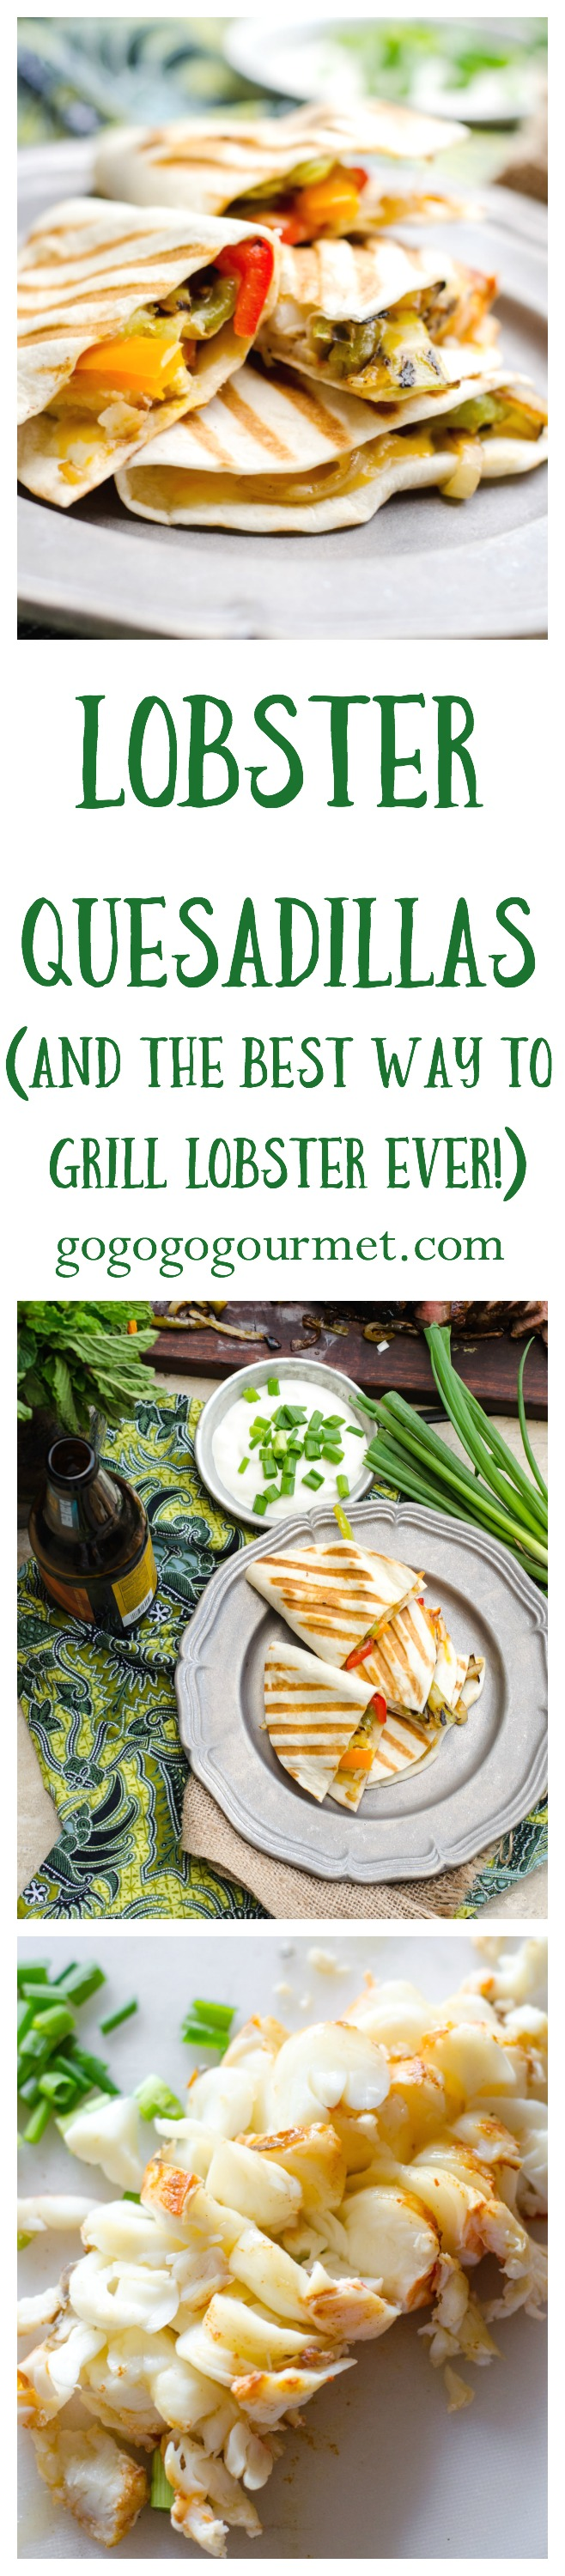 I finally figured out the SECRET method to grilling up buttery, tender lobster tails! Then I folded it into an unbelievable quesadilla. Who says seafood and cheese don't go together? | Go Go Go Gourmet @Go Go Go Gourmet via @gogogogourmet